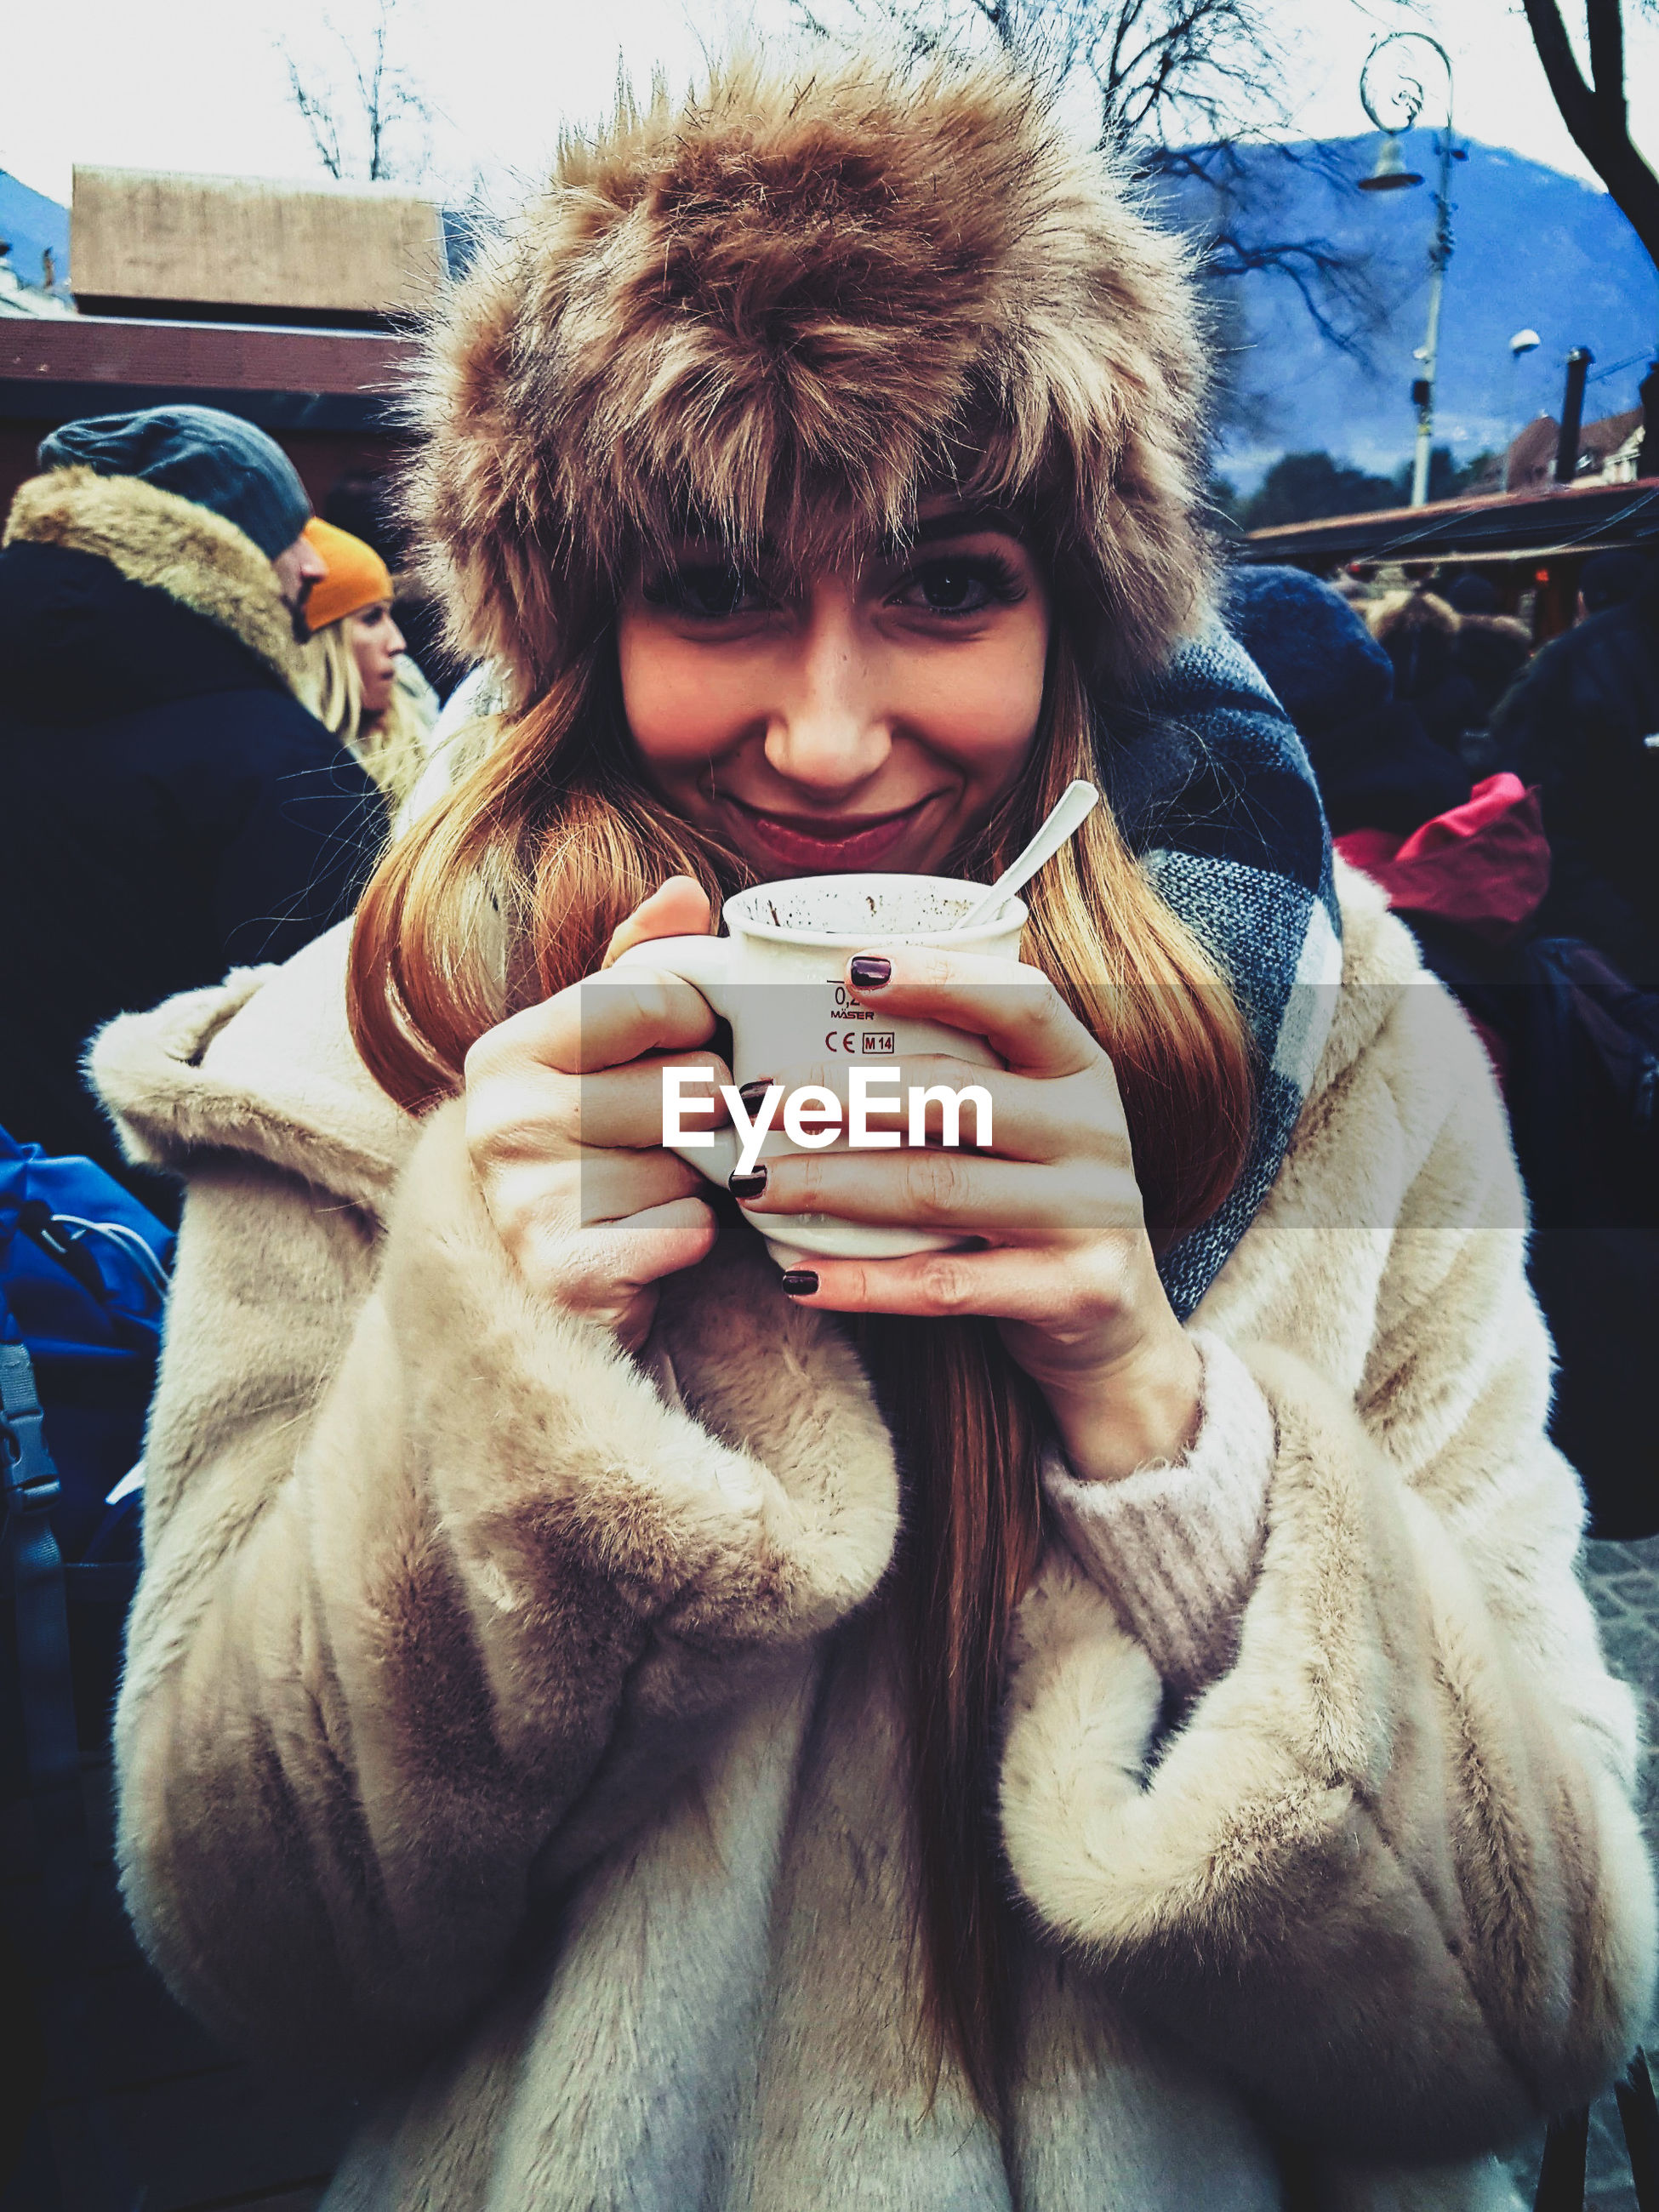 PORTRAIT OF YOUNG WOMAN DRINKING WHILE HOLDING SMART PHONE DURING WINTER